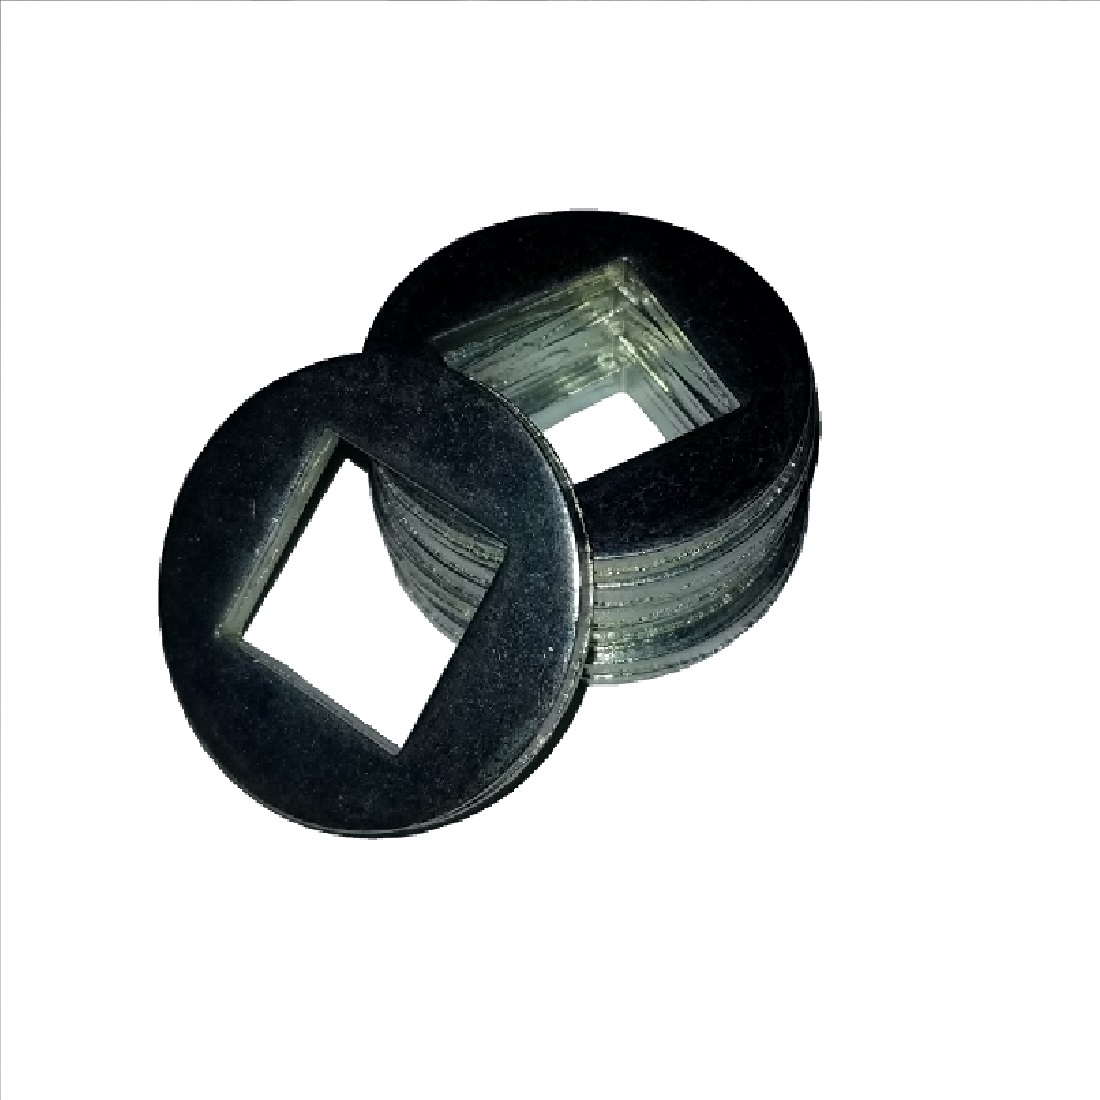 Square ID Washer - 0.594 ID, 1.260 OD, 0.060 Thick, Low Carbon Steel - Soft, Zinc & Clear